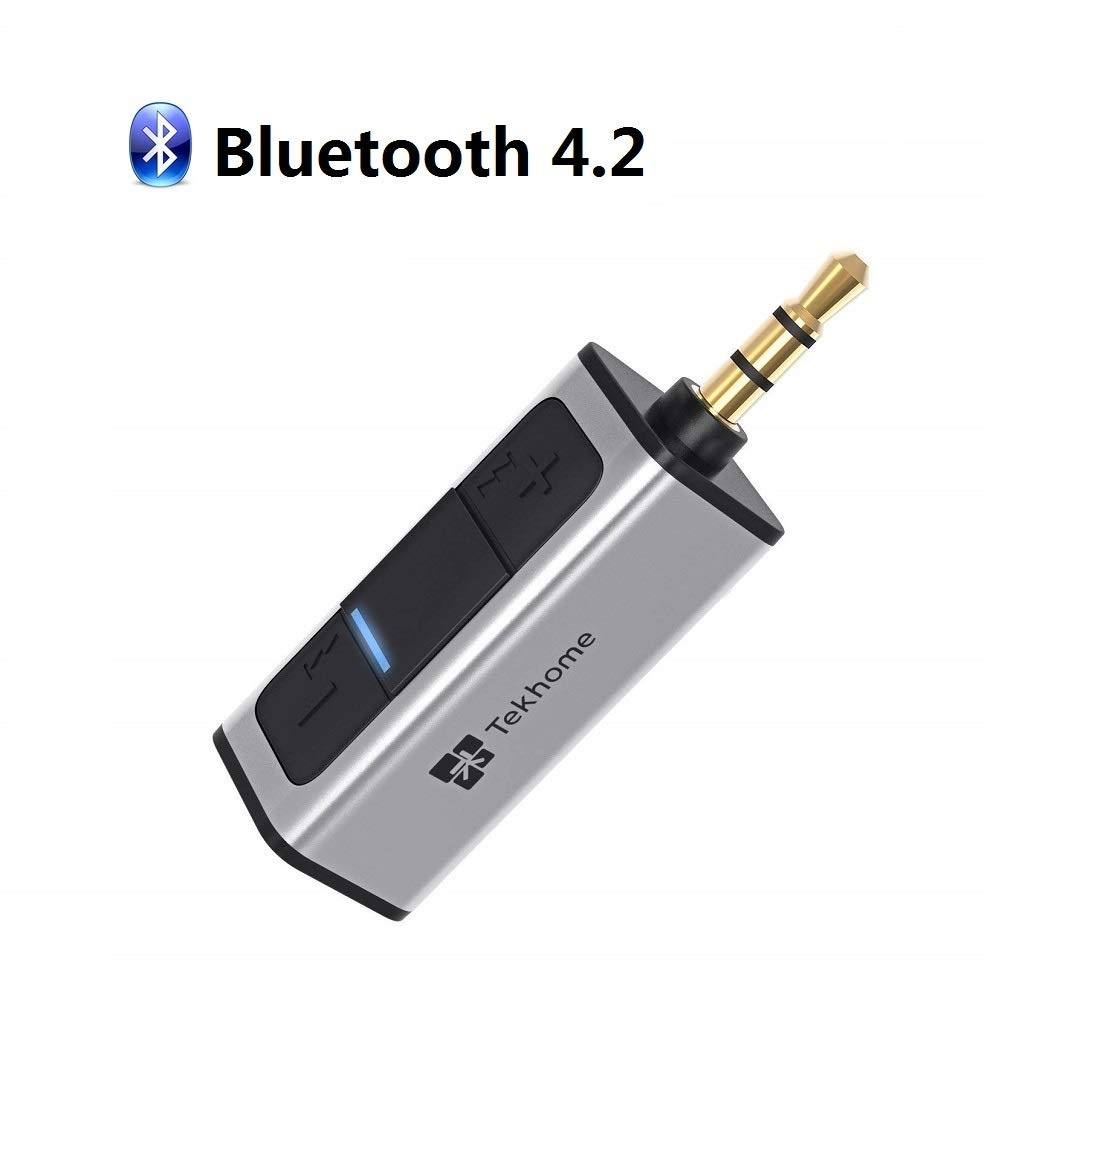 [Upgraded] 5.0 Bluetooth Aux Adapter Car, Bluetooth Headphone Adapter, Bluetooth Receiver Car, TekHome Bluetooth Audio Receiver for Music Streaming Home Sound System, Built-in Microphone, Silver.